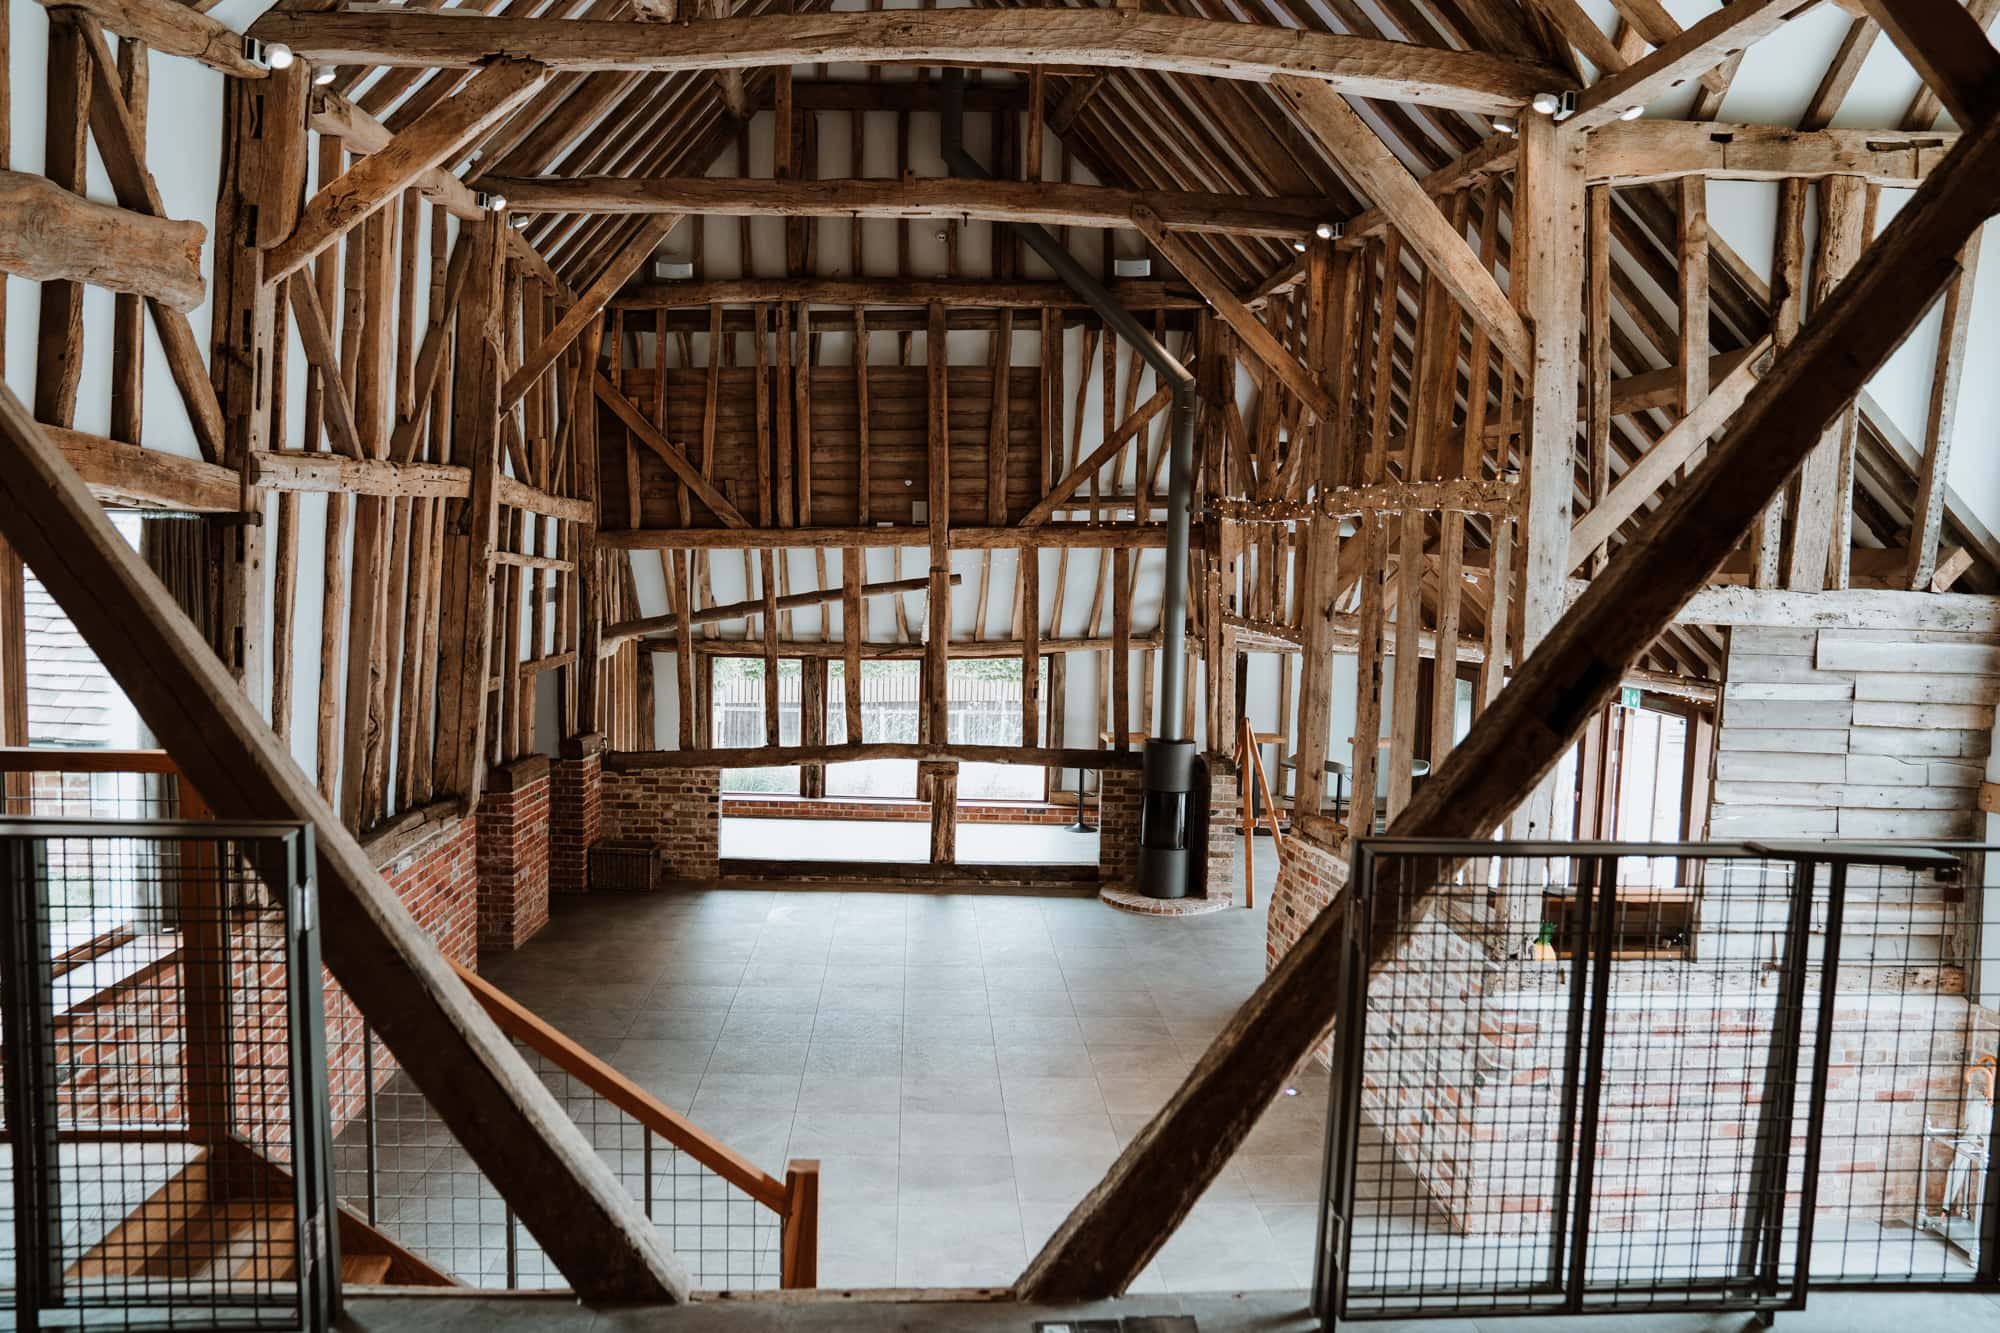 high roof and exposed beams of the interior of The Oak Barn from the raised stage